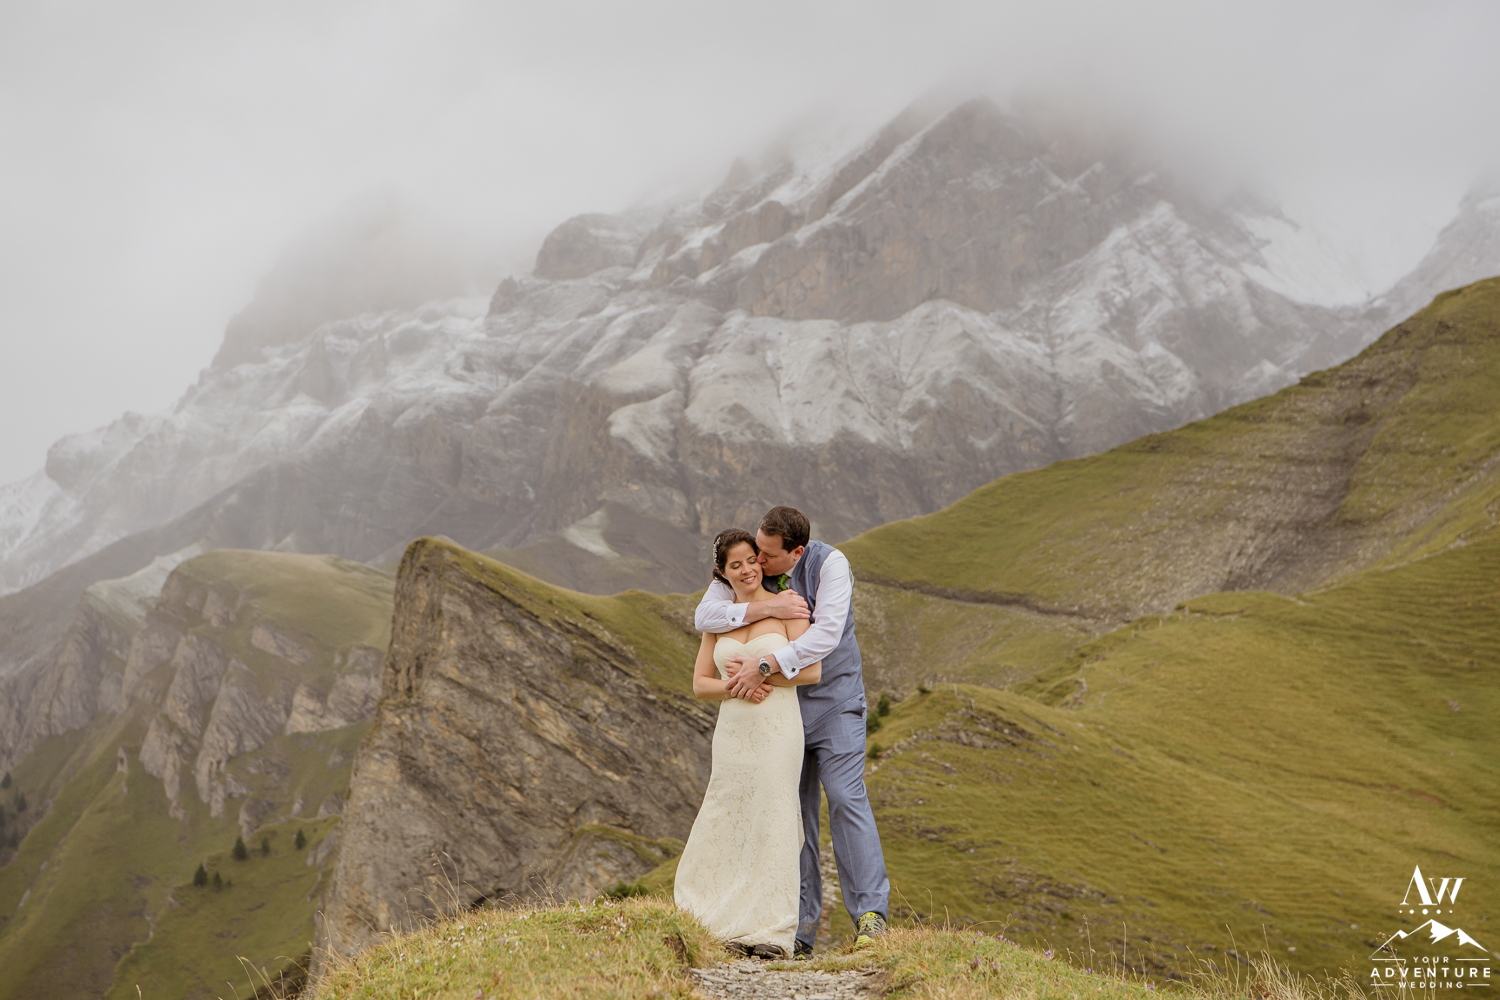 Couple hugging during adventure wedding in Switzerland